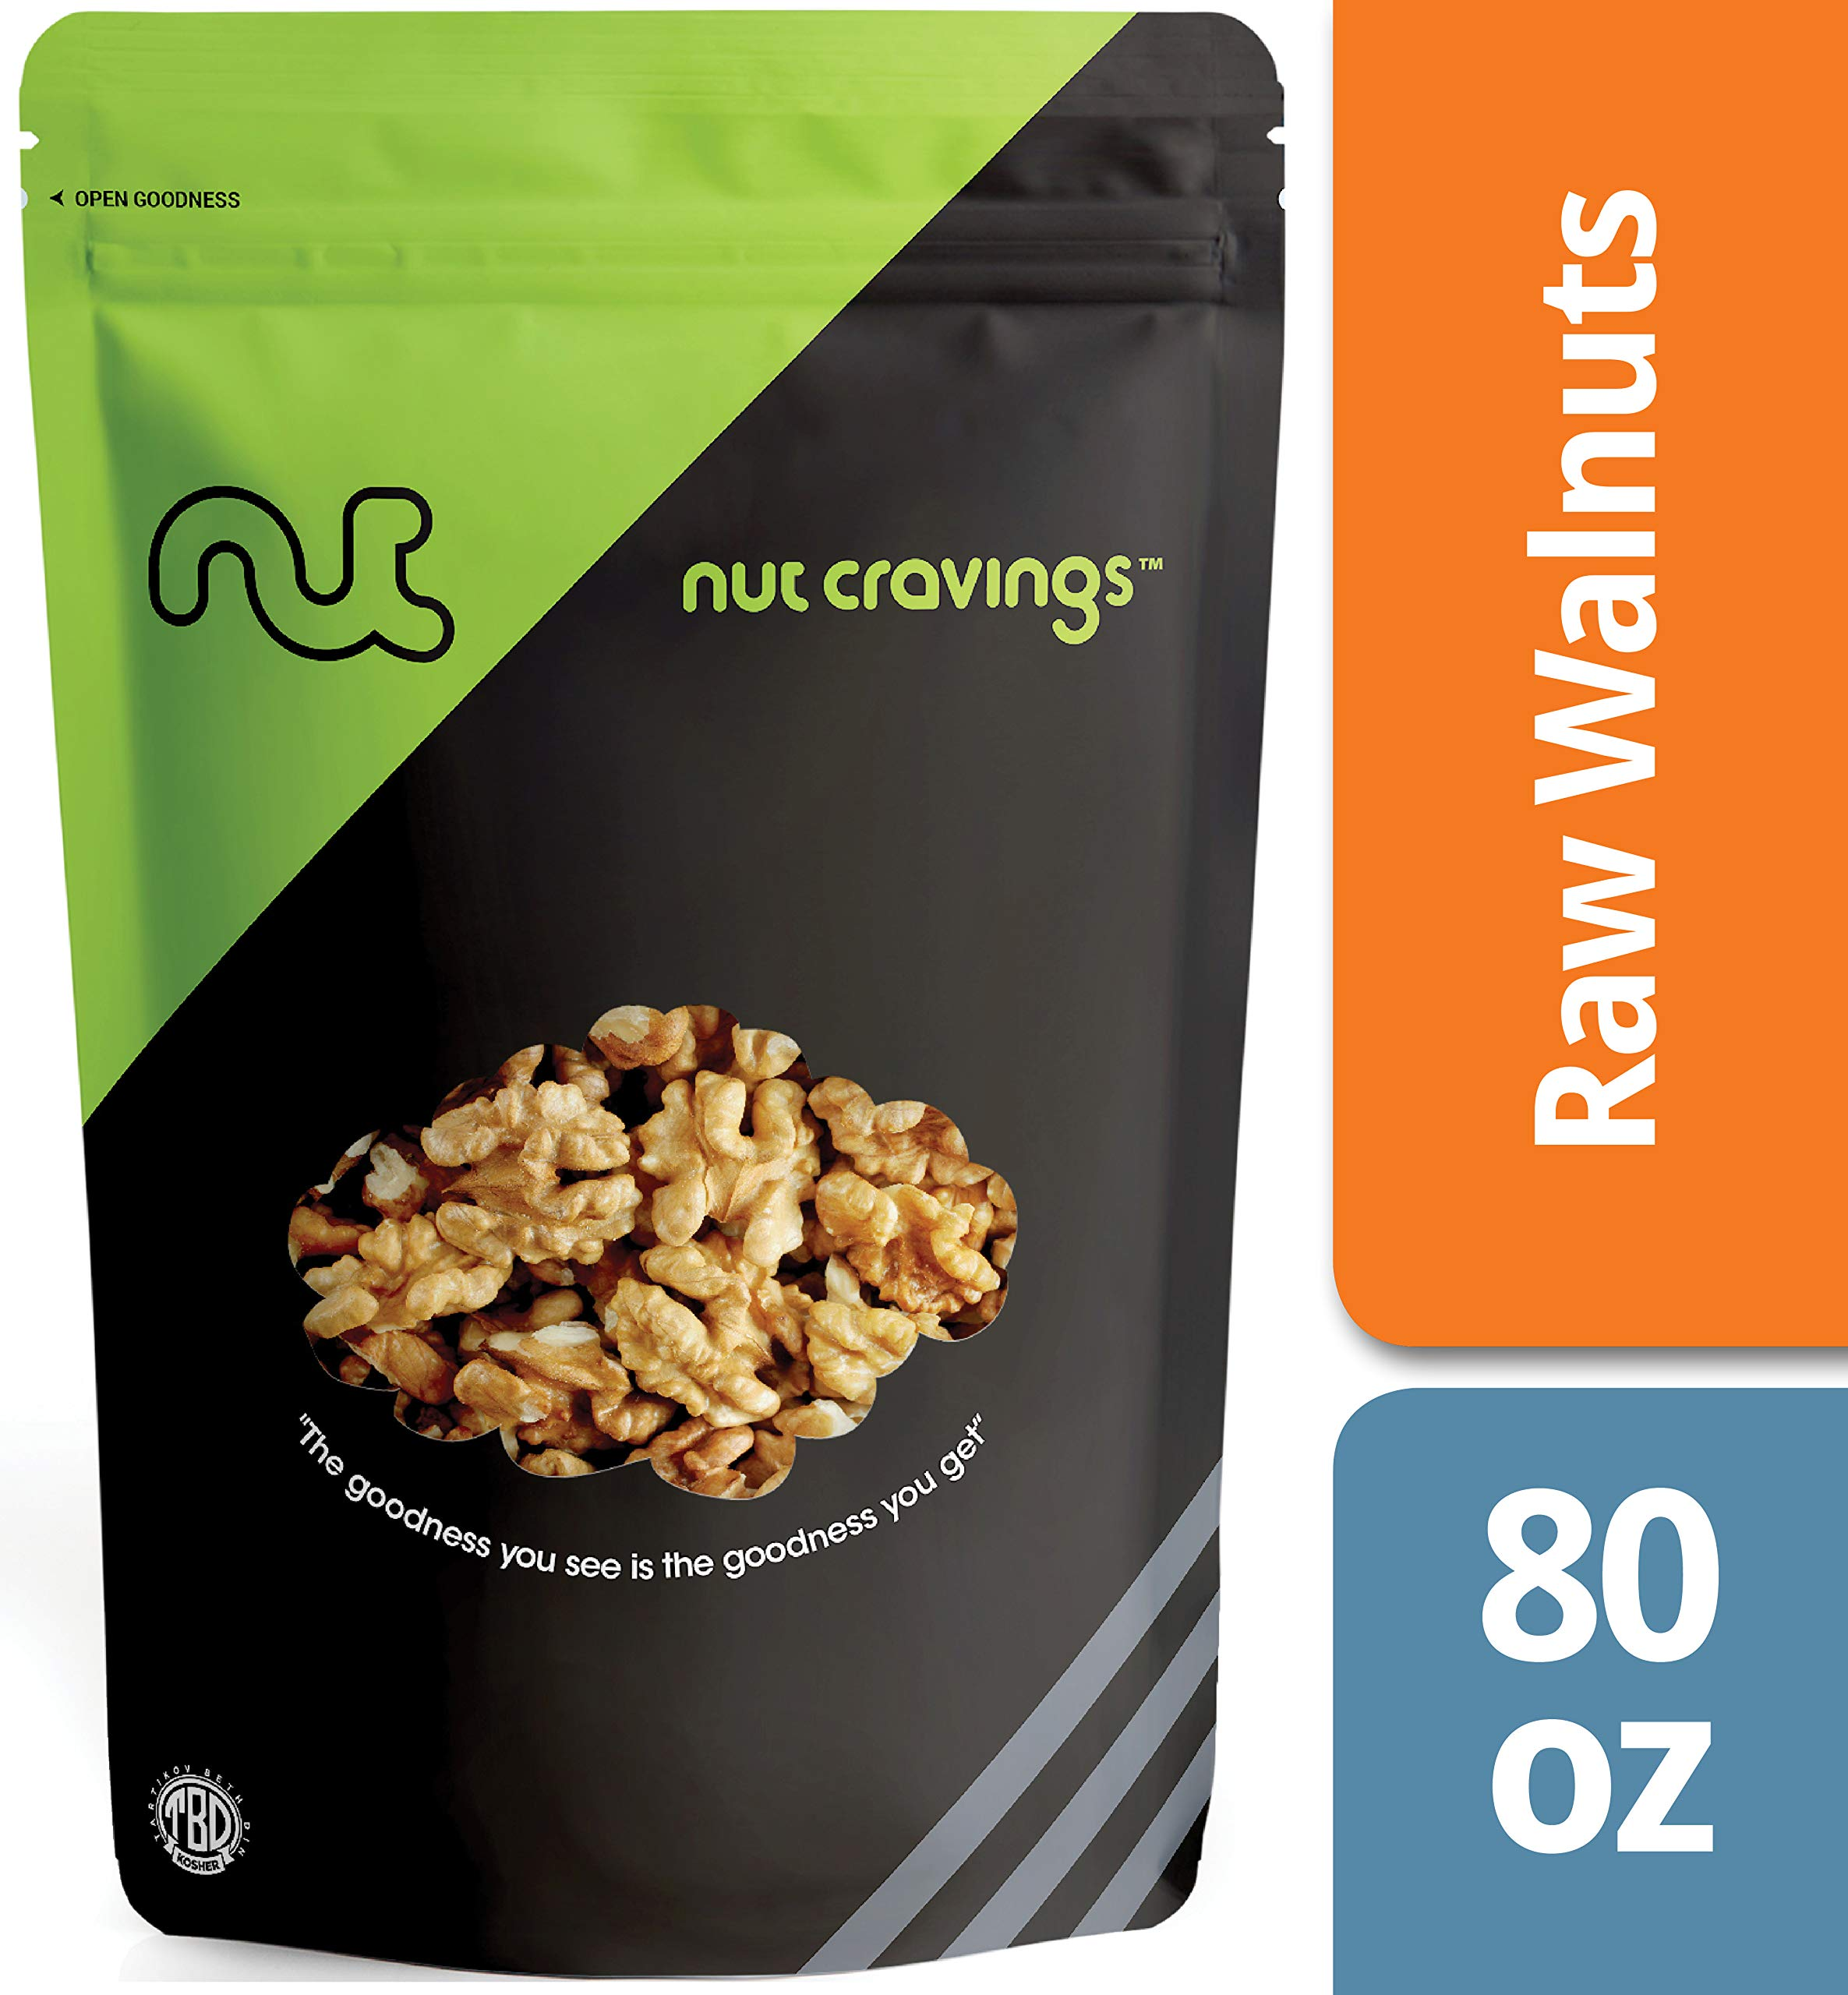 Nut Cravings California Raw Walnuts (5 Pounds) - 100% All Natural Shelled Halves and Pieces - 80 Ounce by Nut Cravings